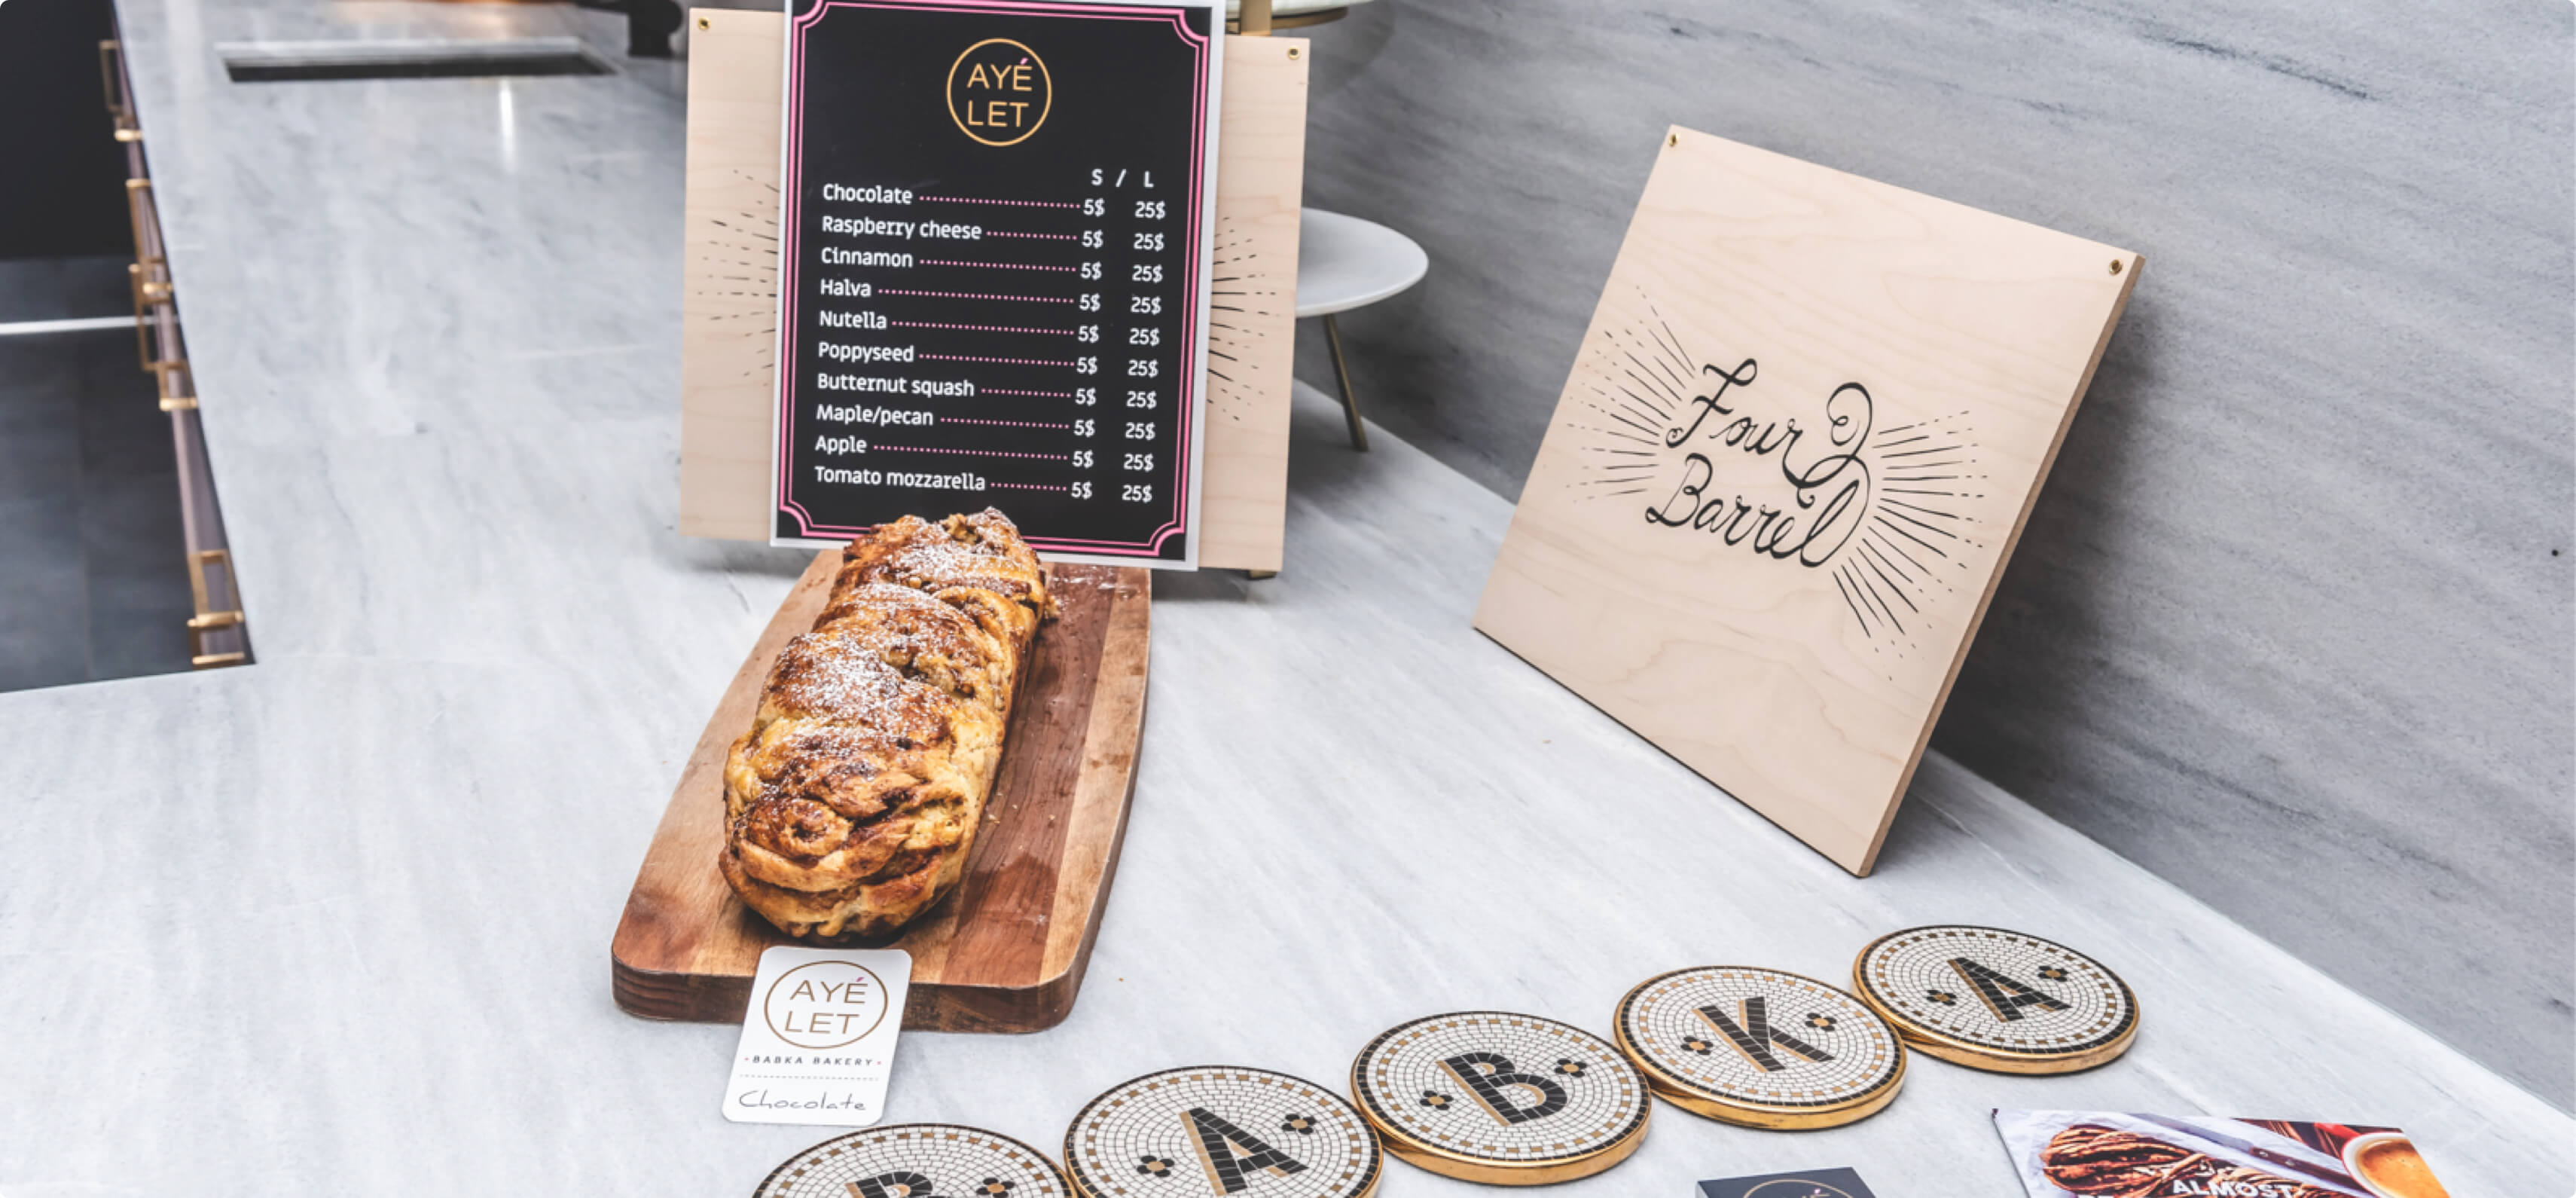 Hourly customer Babka by Ayelet delicious pastry on the table with the menu.